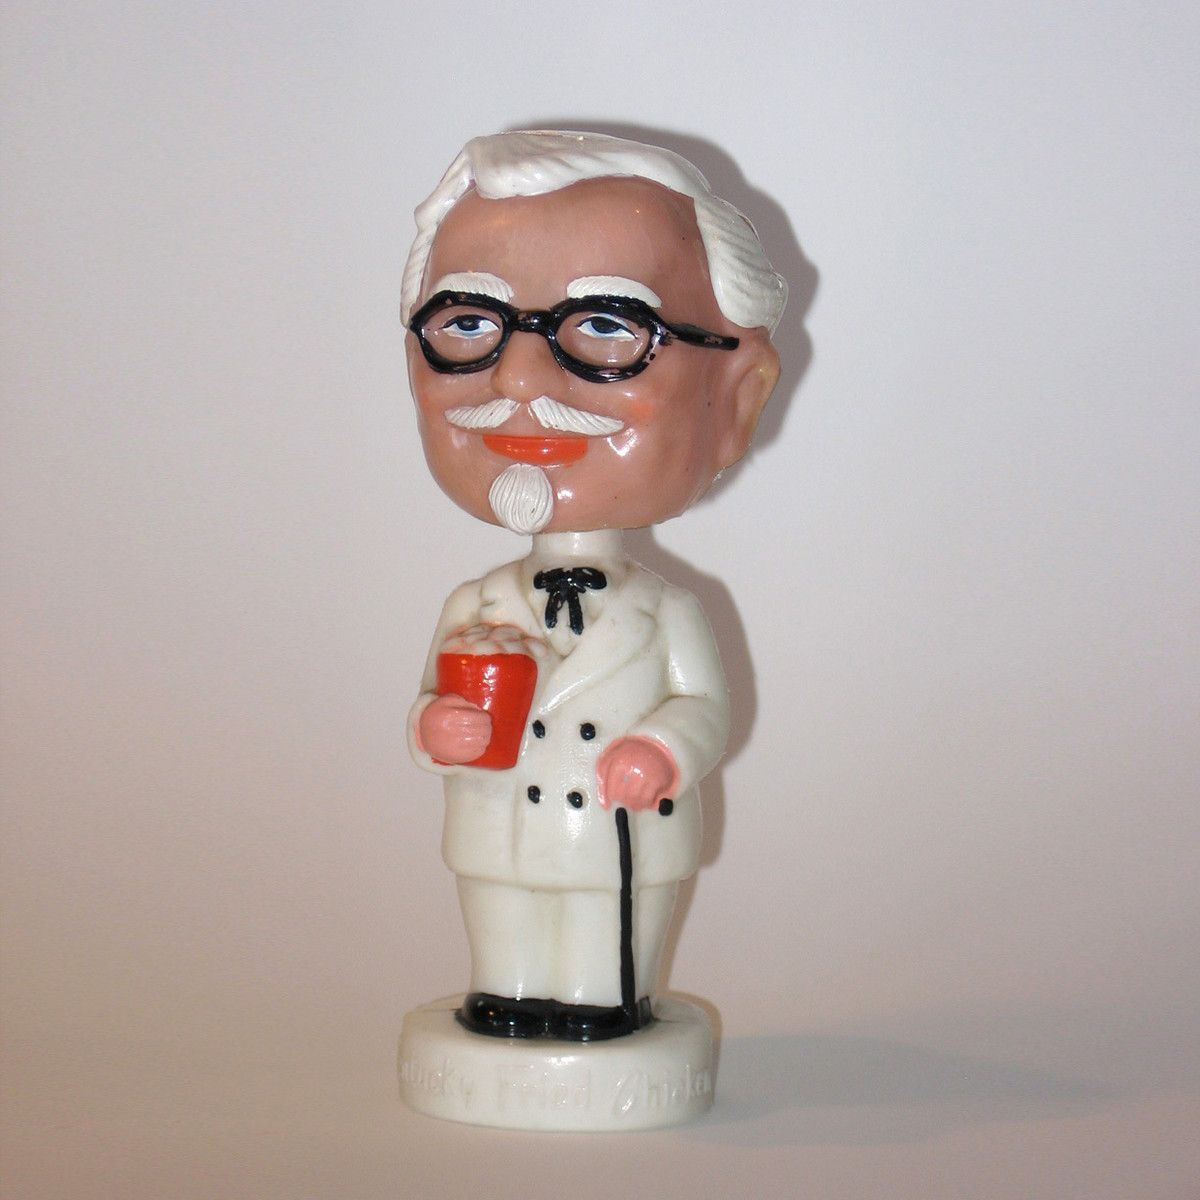 Kentucky Fried Chicken Sanders Bobble Head I have one of these | KFC ...